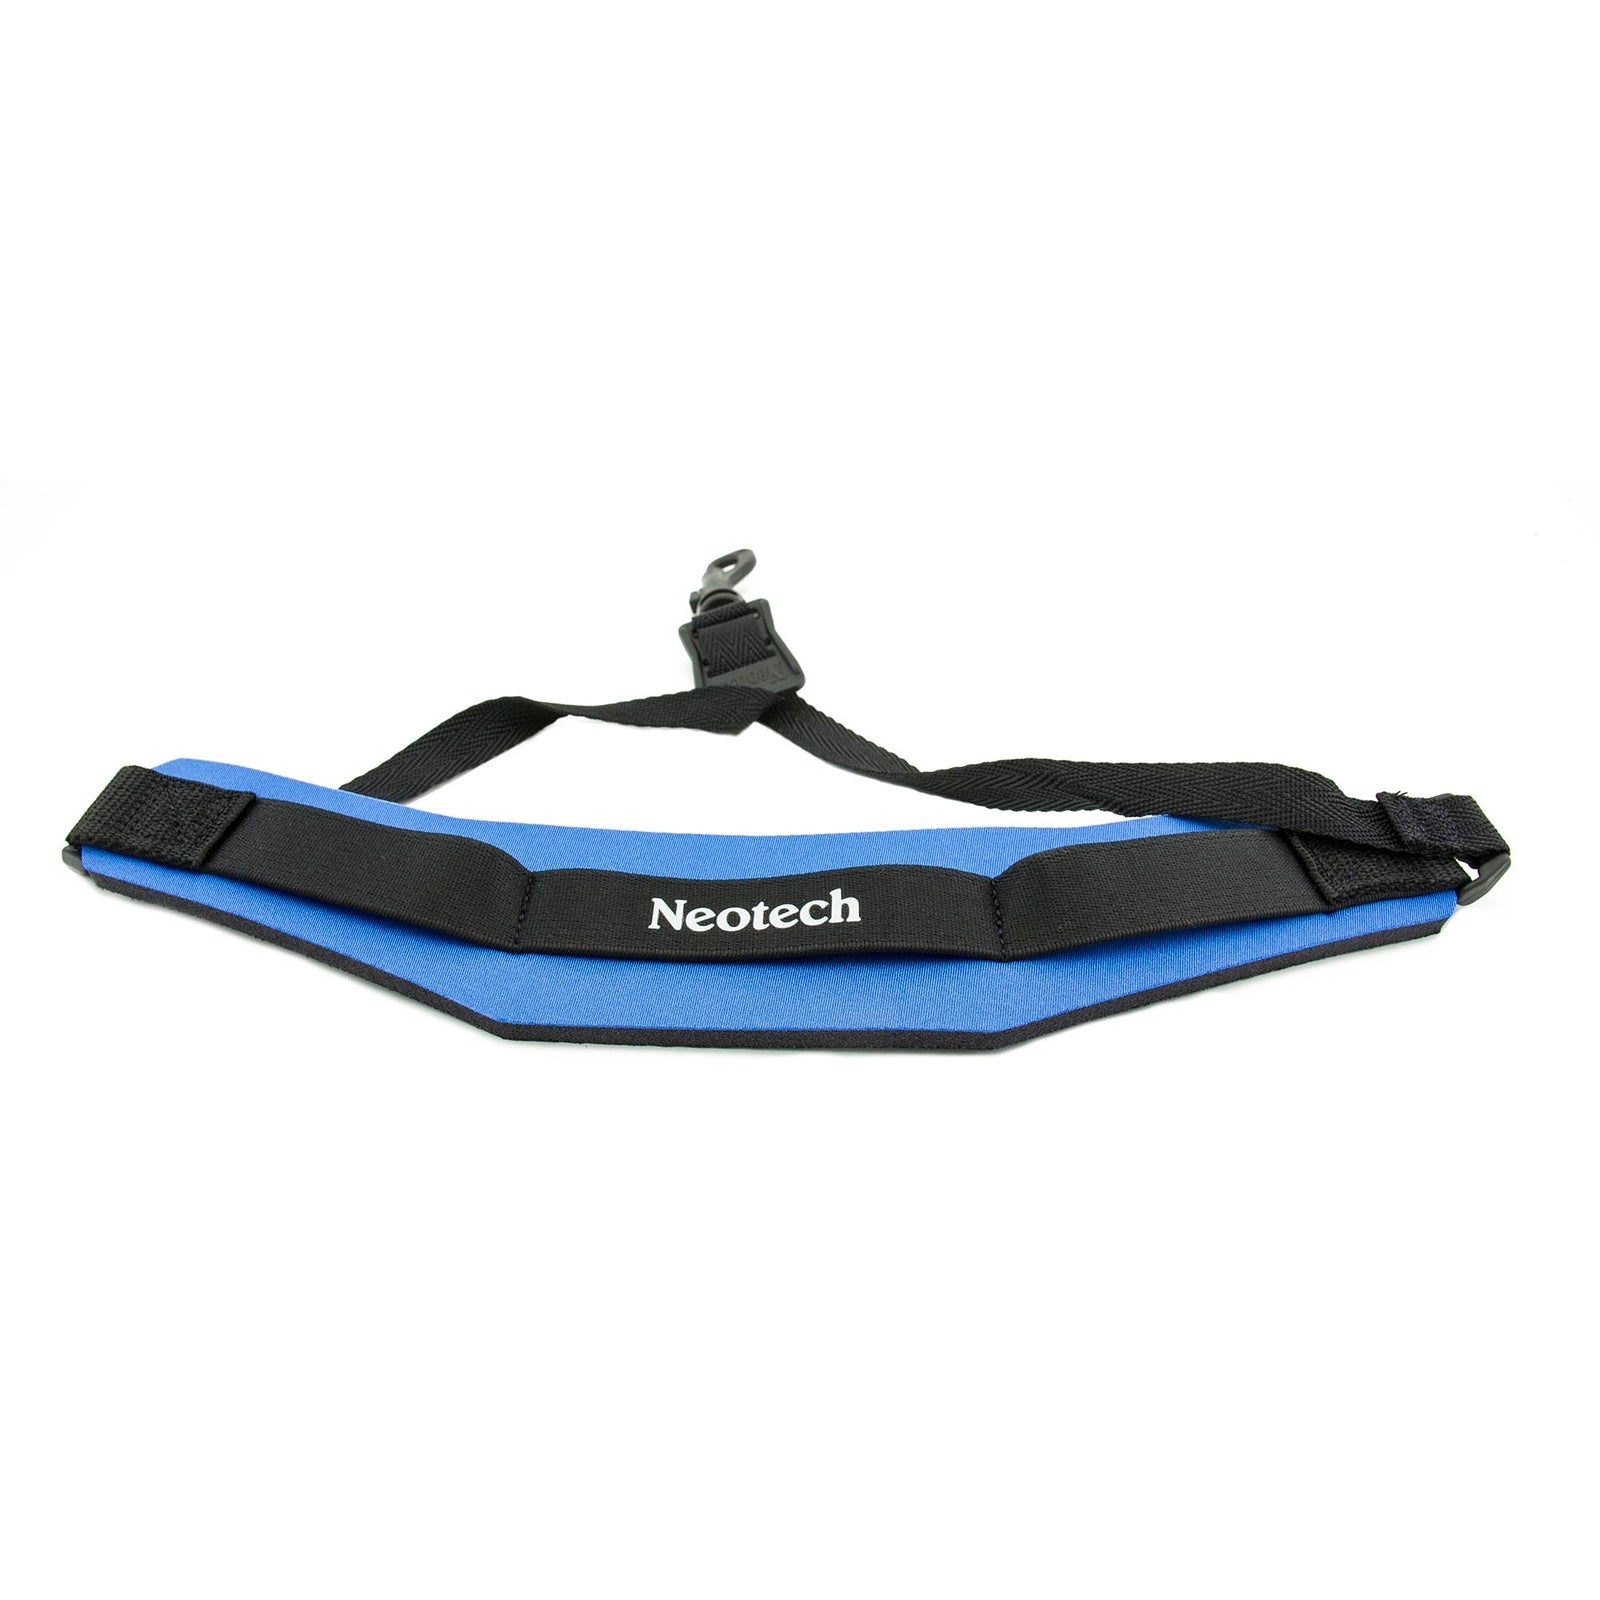 Neotech Neck Strap - Regular - Swivel Hook - Royal Blue